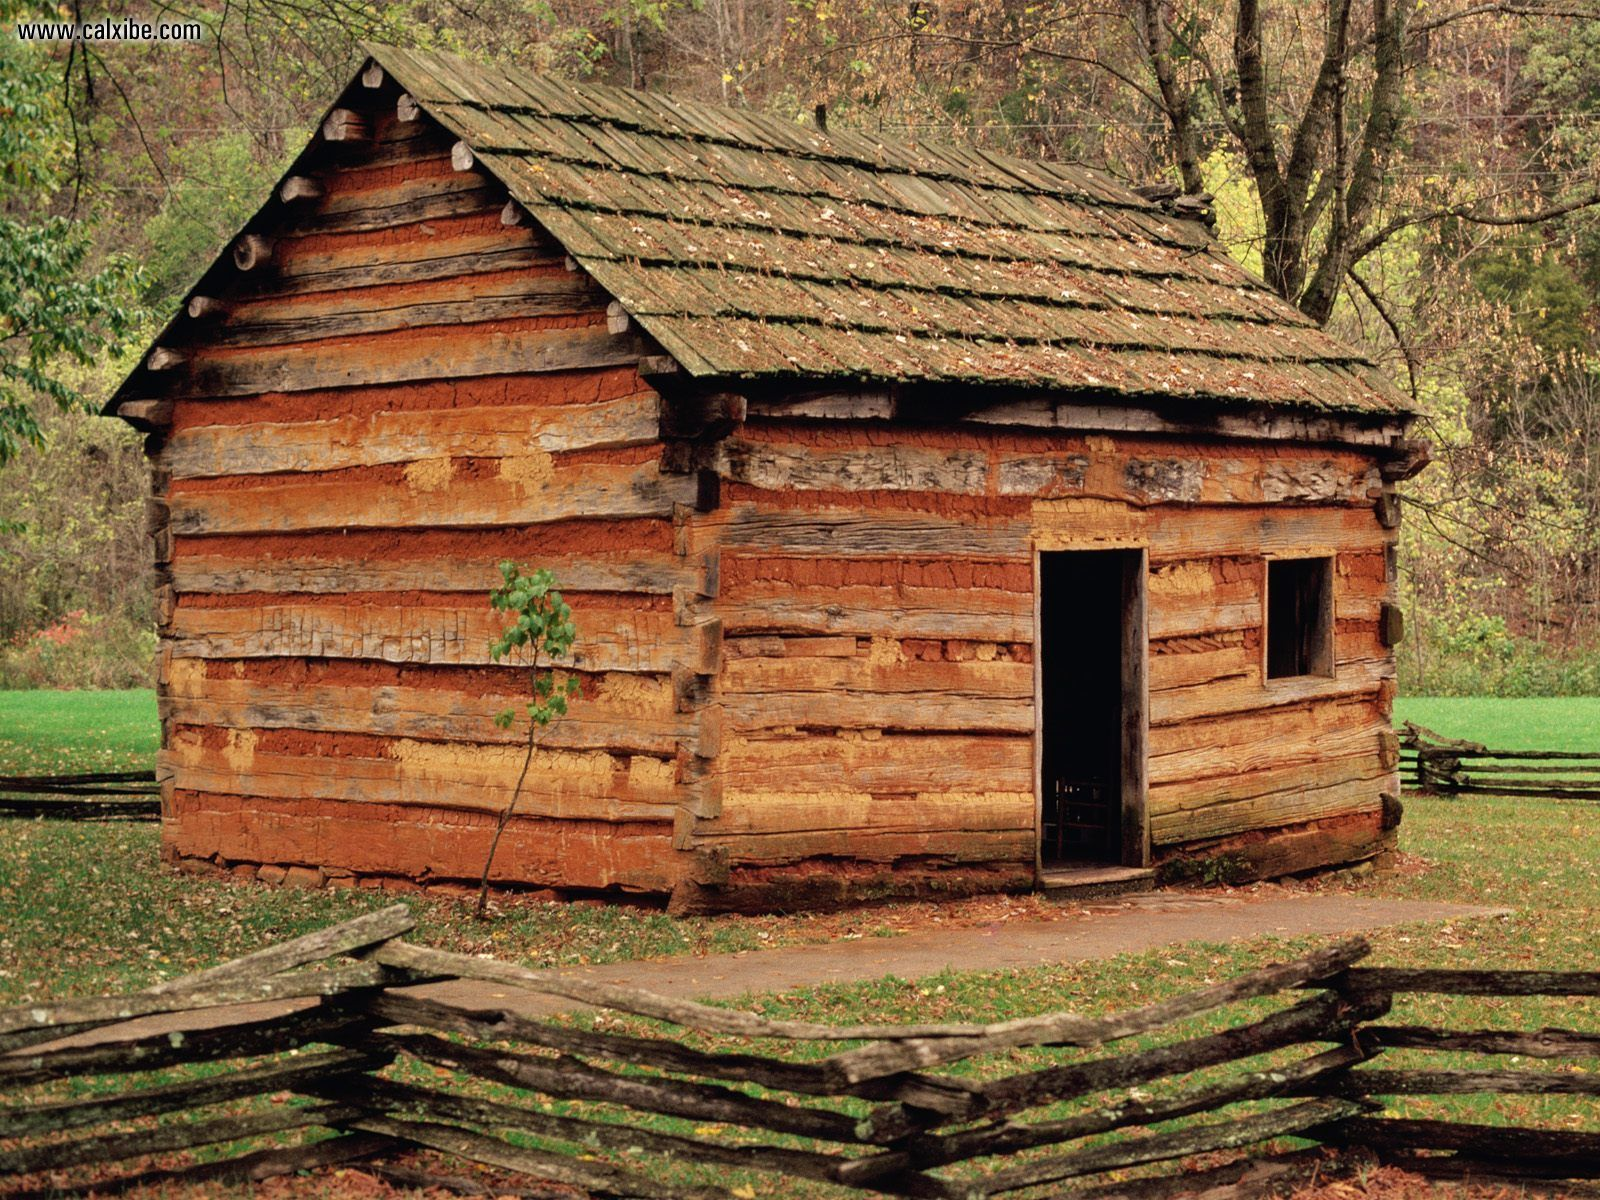 This cabin at Knob Creek Farm was constructed in 1931